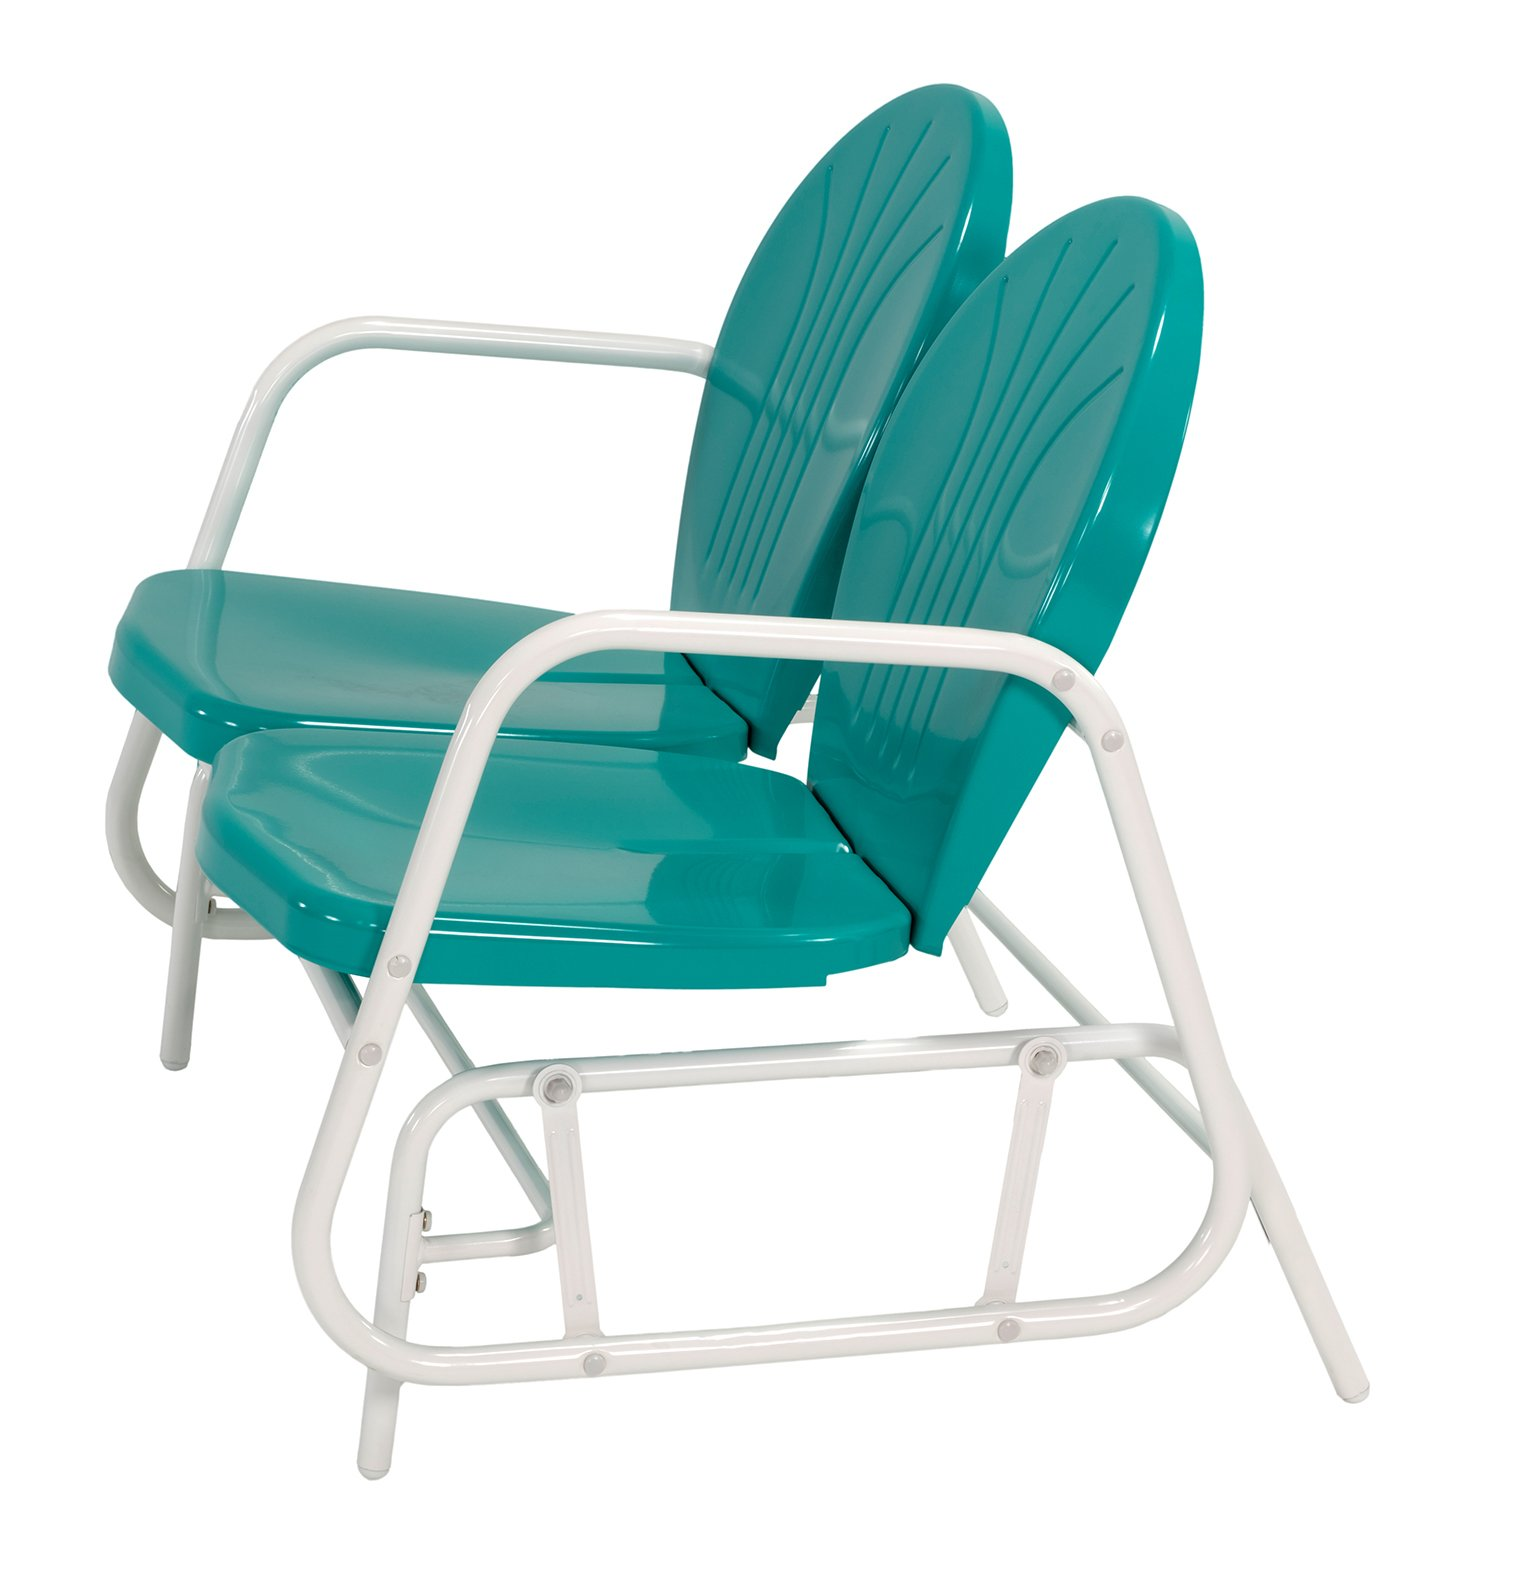 Jack Post BH-10EM Porch Glider,Turquoise by Jack Post (Image #3)